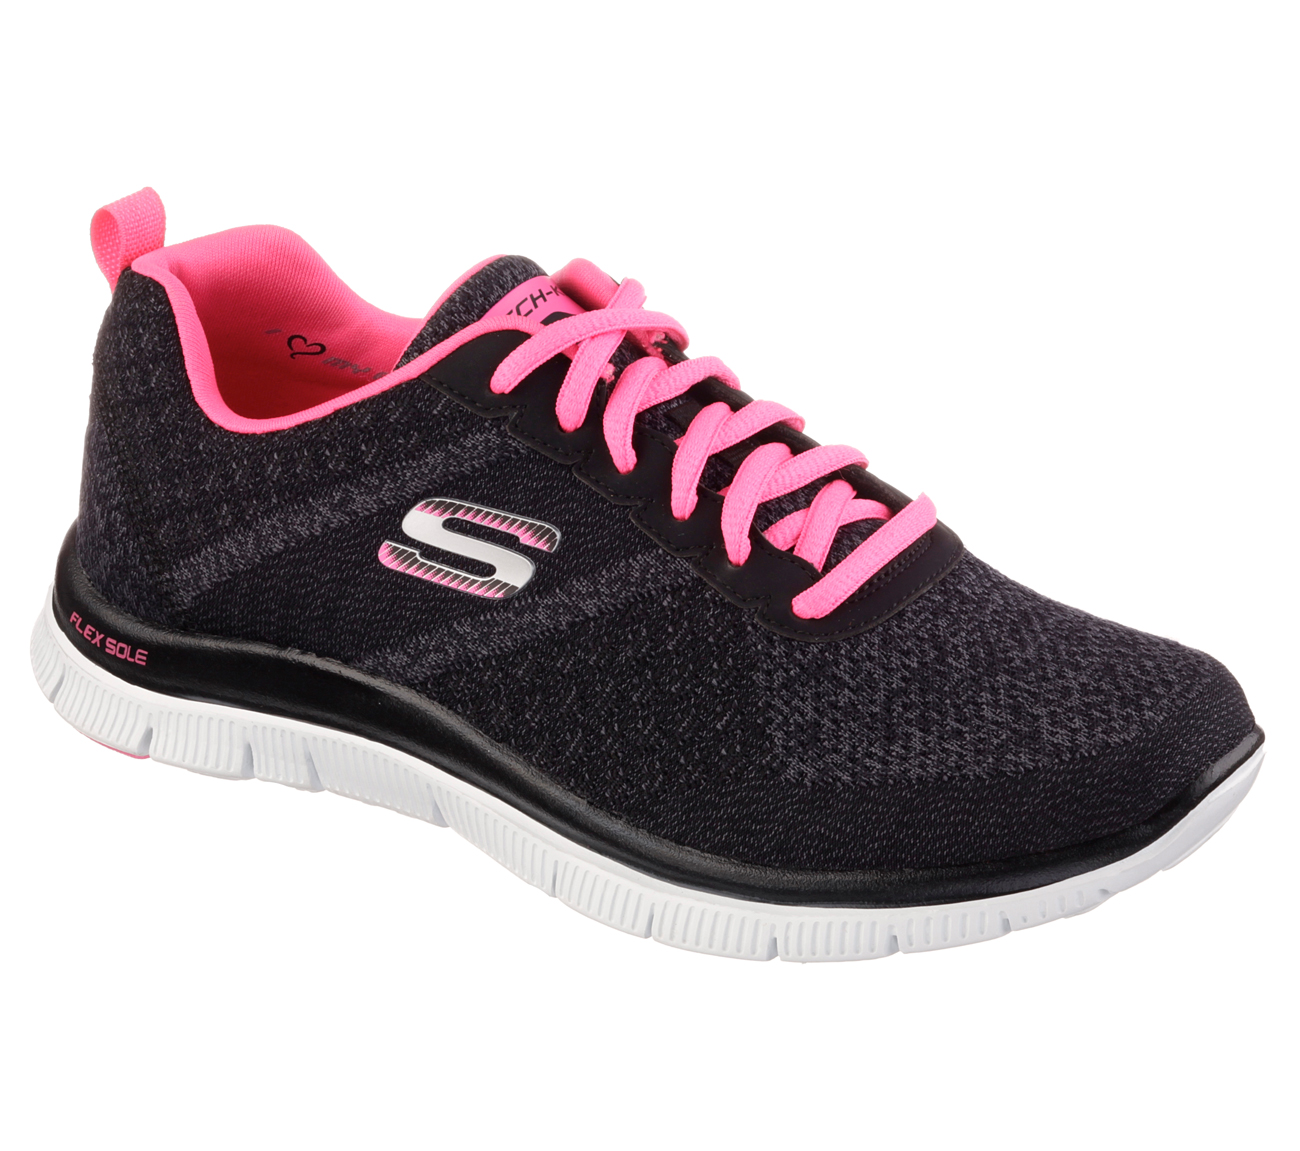 Shop Skechers Shoes for men, women and kids Online from Jabong. Select from our latest collection of Casual Skechers Shoes online store at best price. Free Shipping* 15 days Return Cash on Delivery.